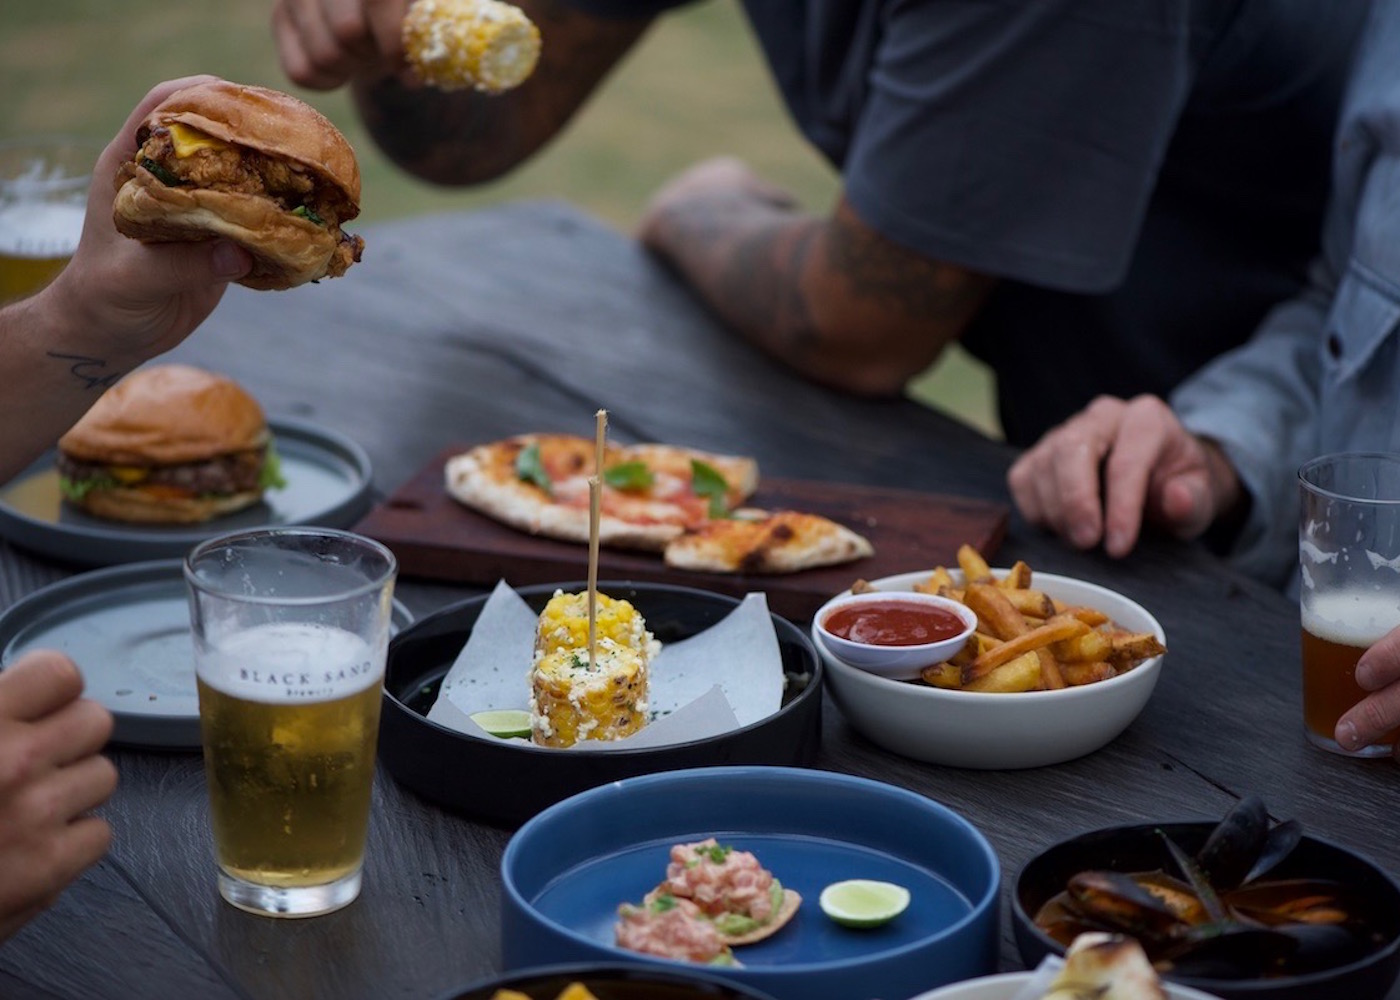 Craft beer and good food at Black Sand Brewery - a new bar and restaurant in Canggu, Bali, Indonesia